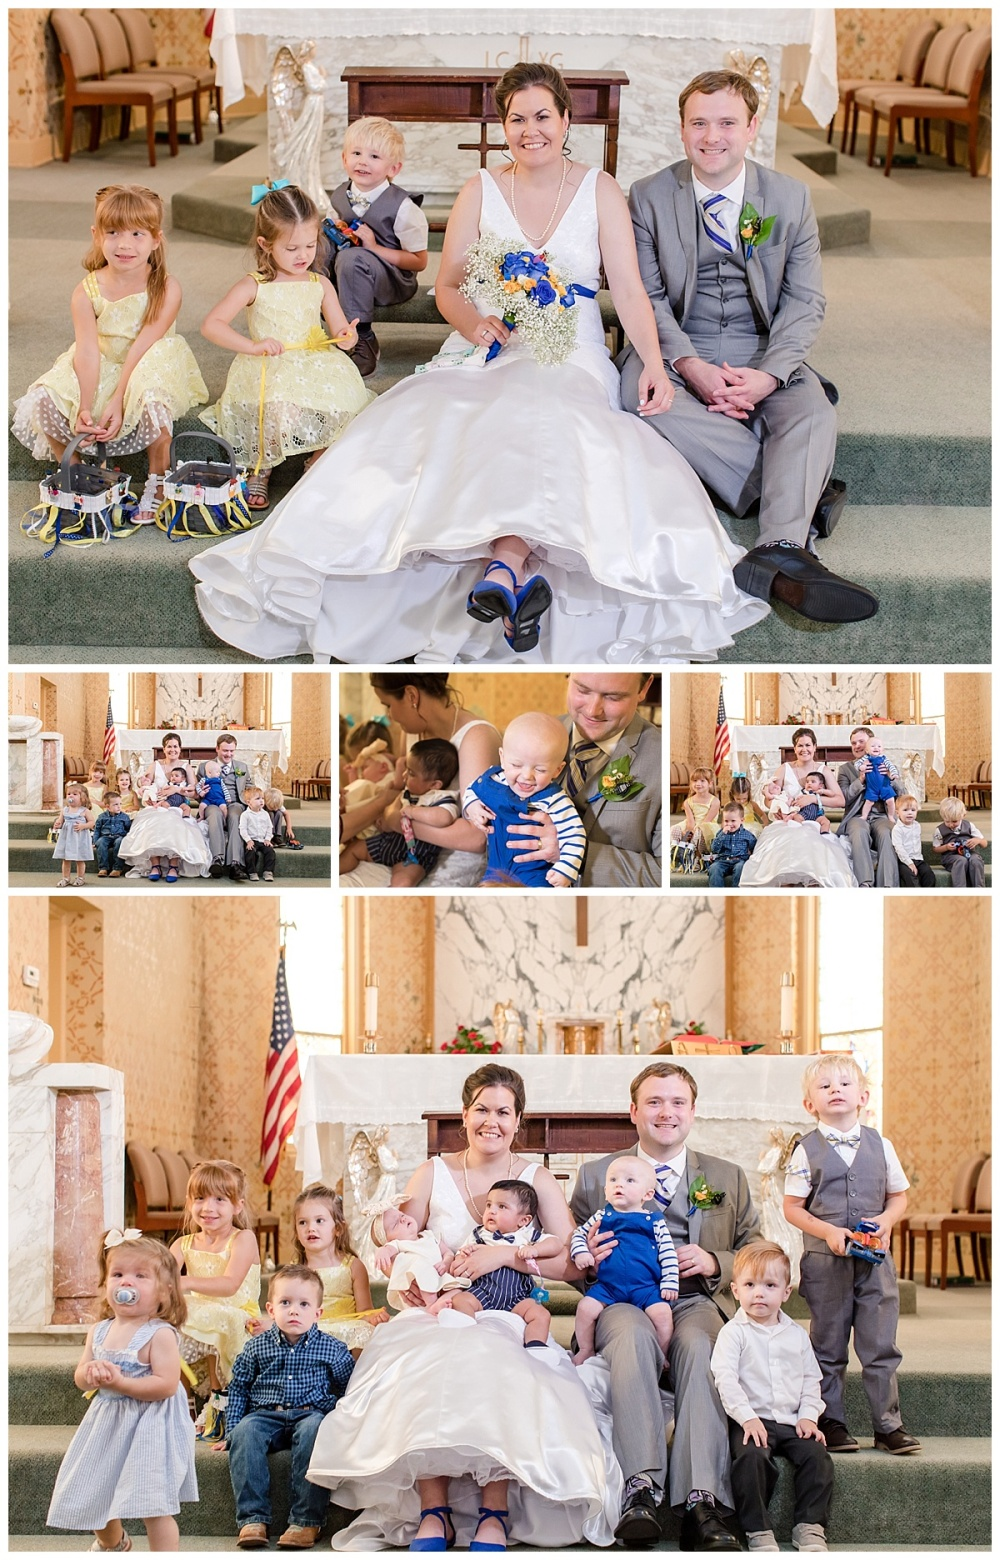 Texas-Wedding-Photographer-La-Coste-Our-Lady-Of-Grace-Church-Bride-Groom-Lego-Theme-Carly-Barton-Photography_0034.jpg